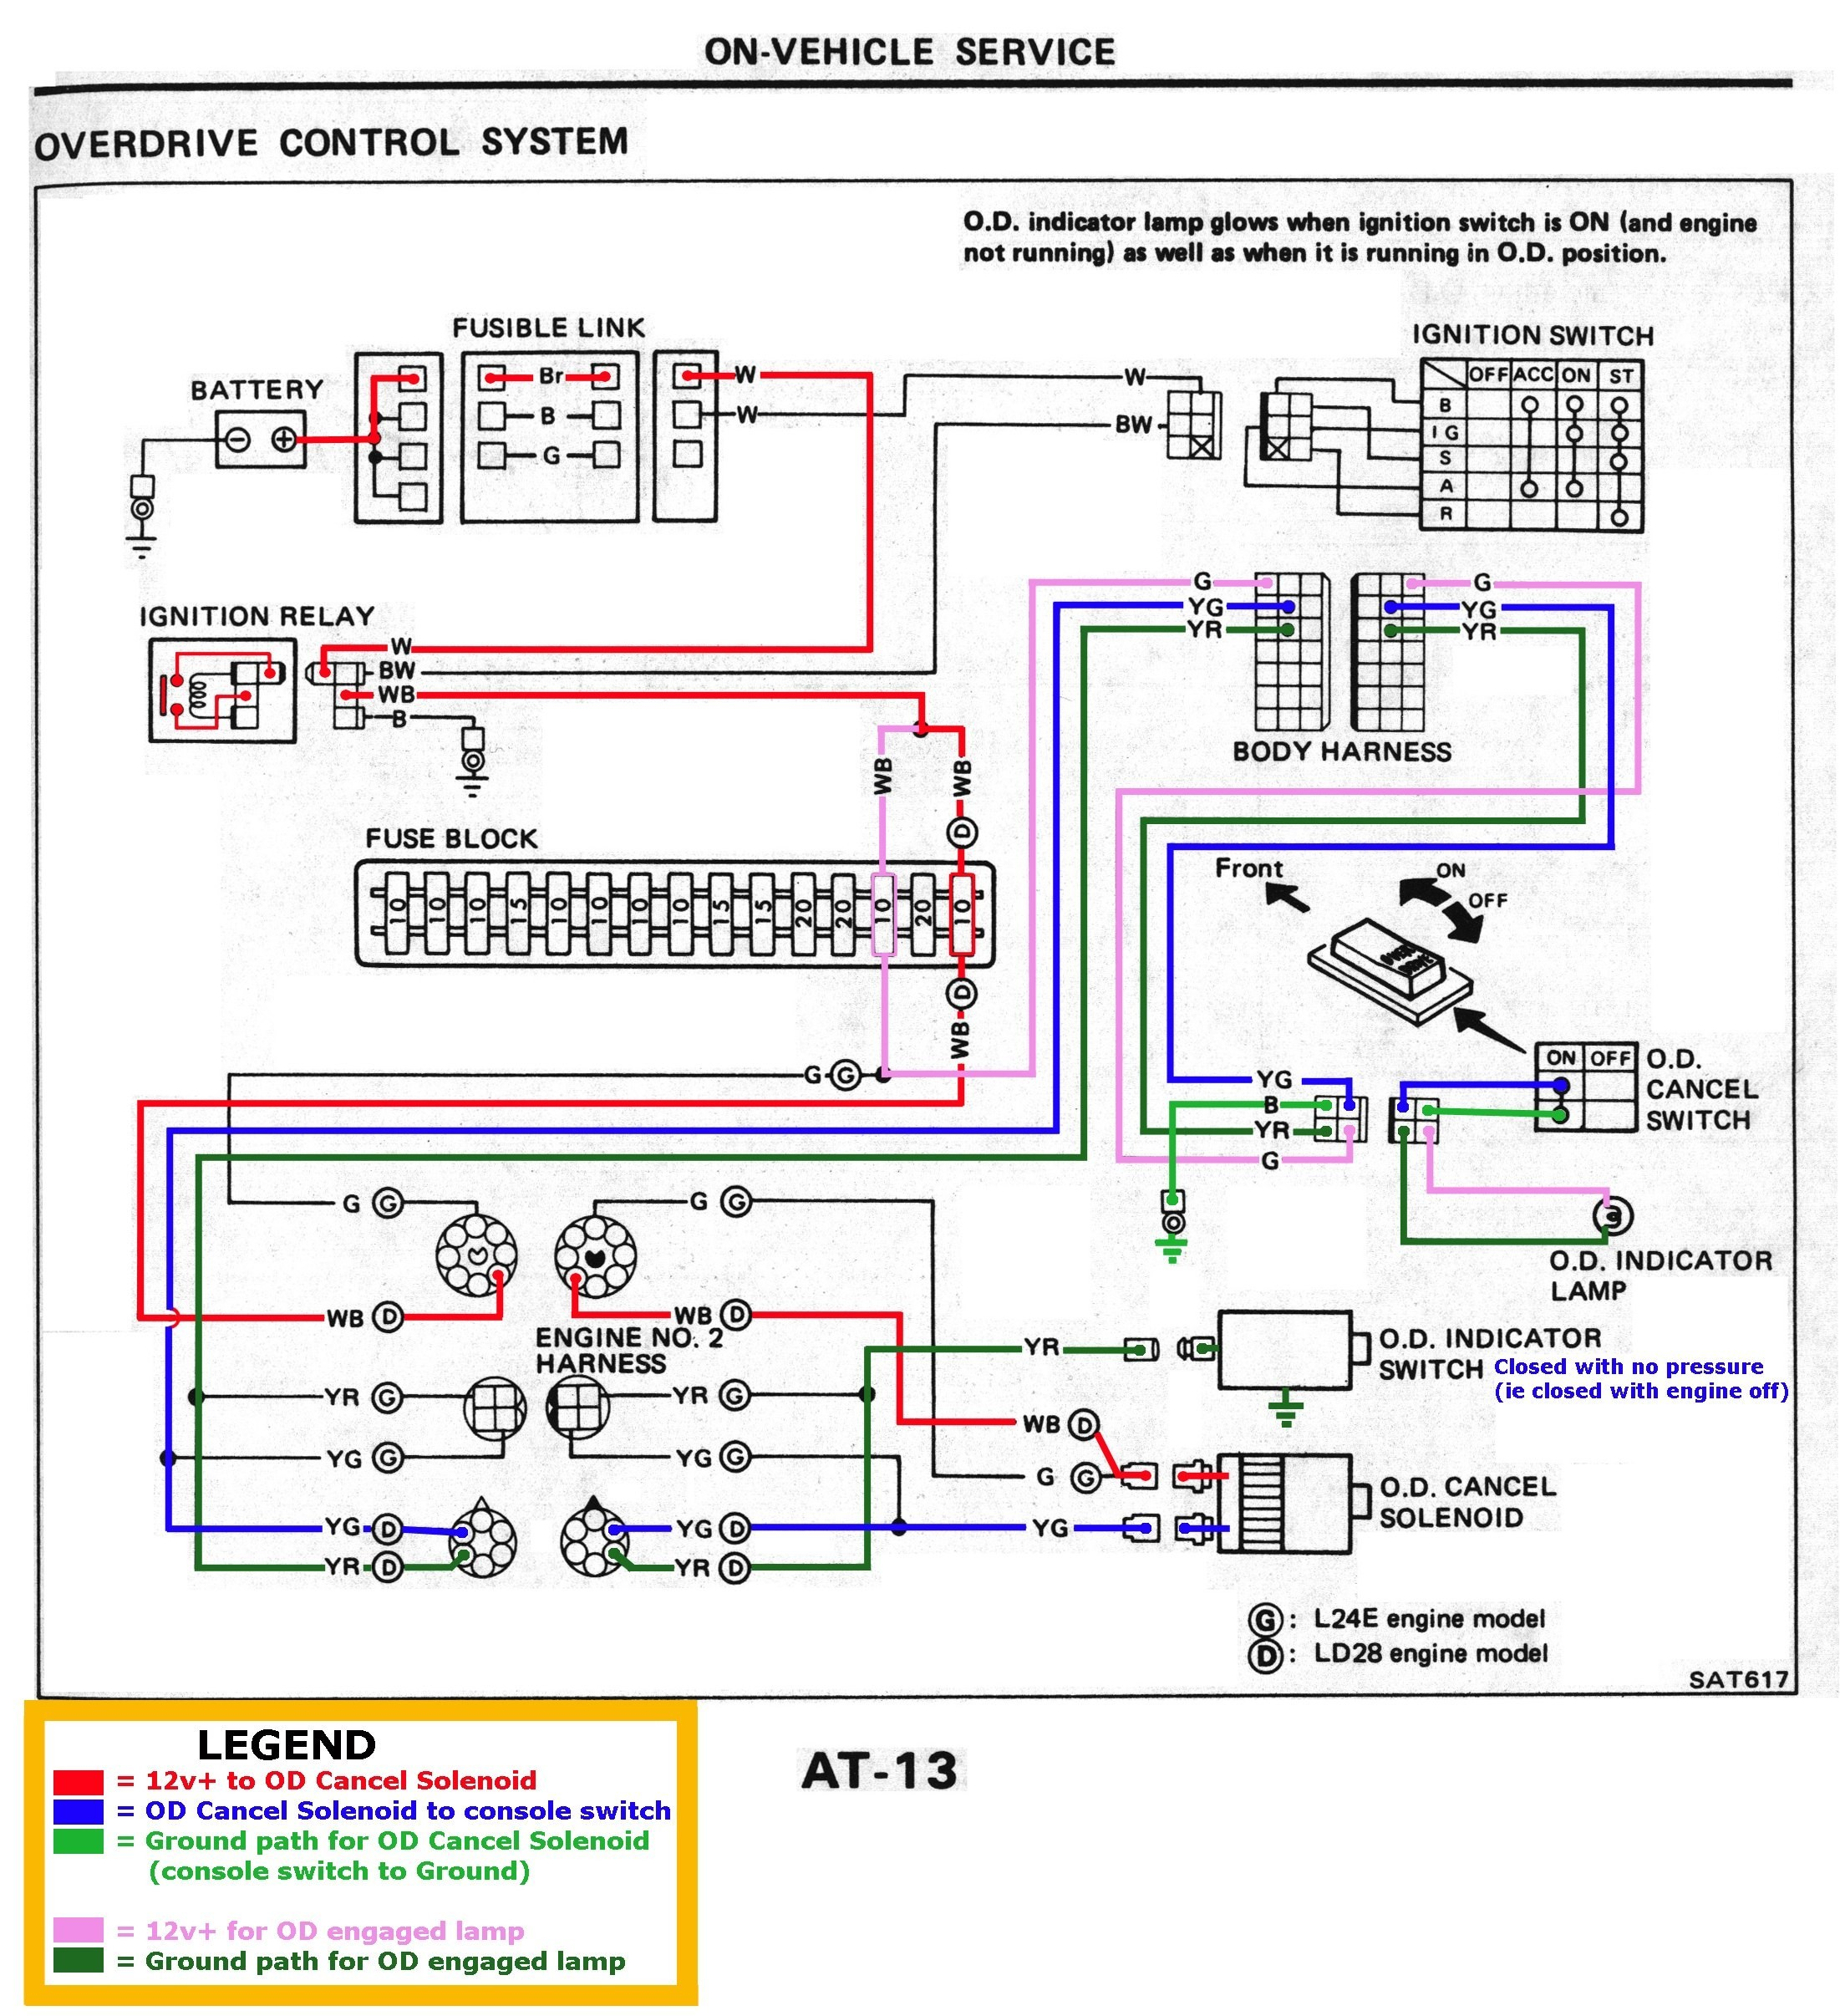 Kia Spectra Engine Diagram Nissan Sentra Engine Diagram Nissan Sel forums •  View topic L4n71b Of